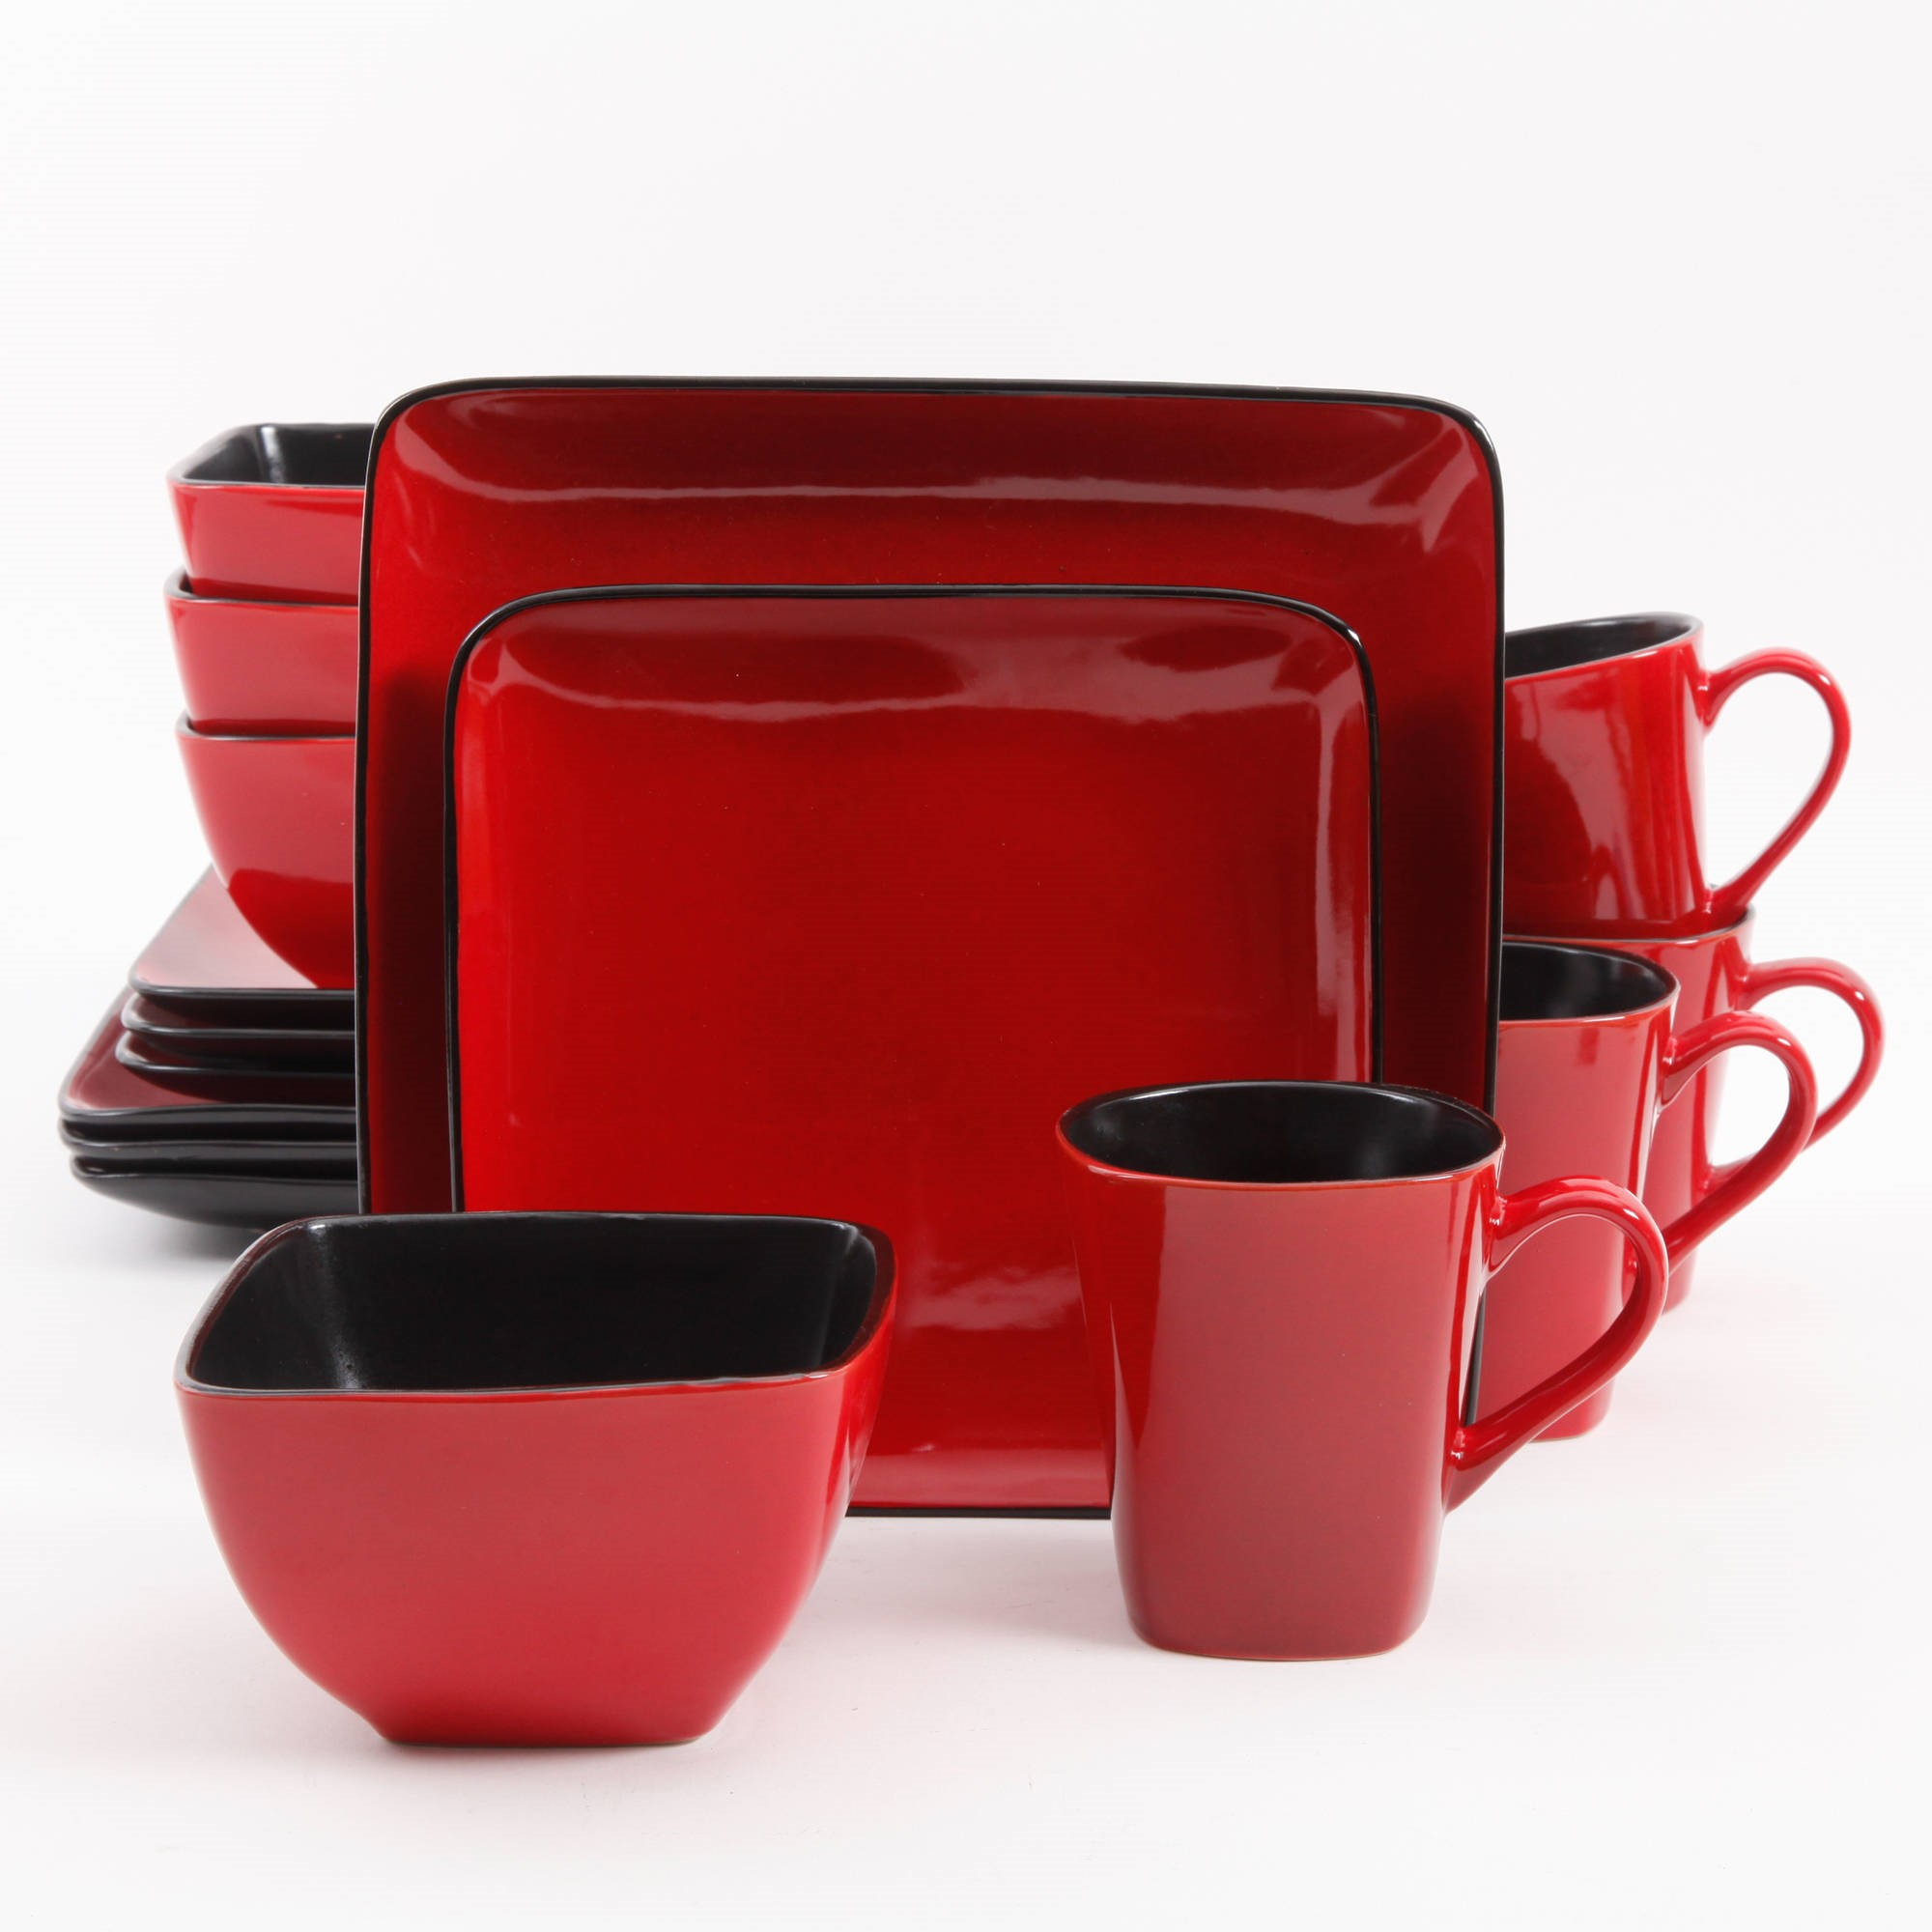 Better Homes & Gardens Rave 16-Piece Square Dinnerware Set, Red